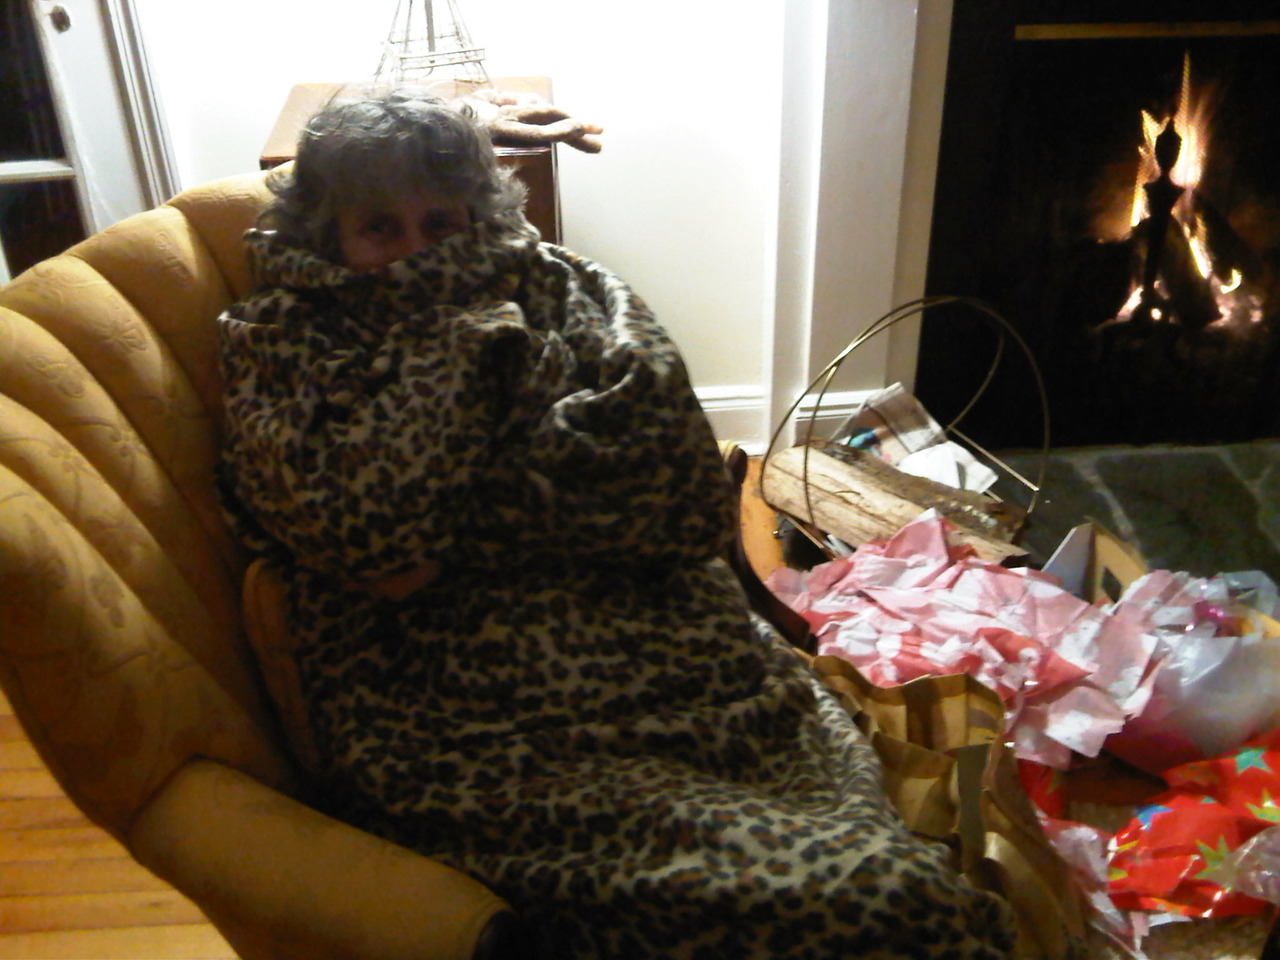 A very Snuggie Christmas.